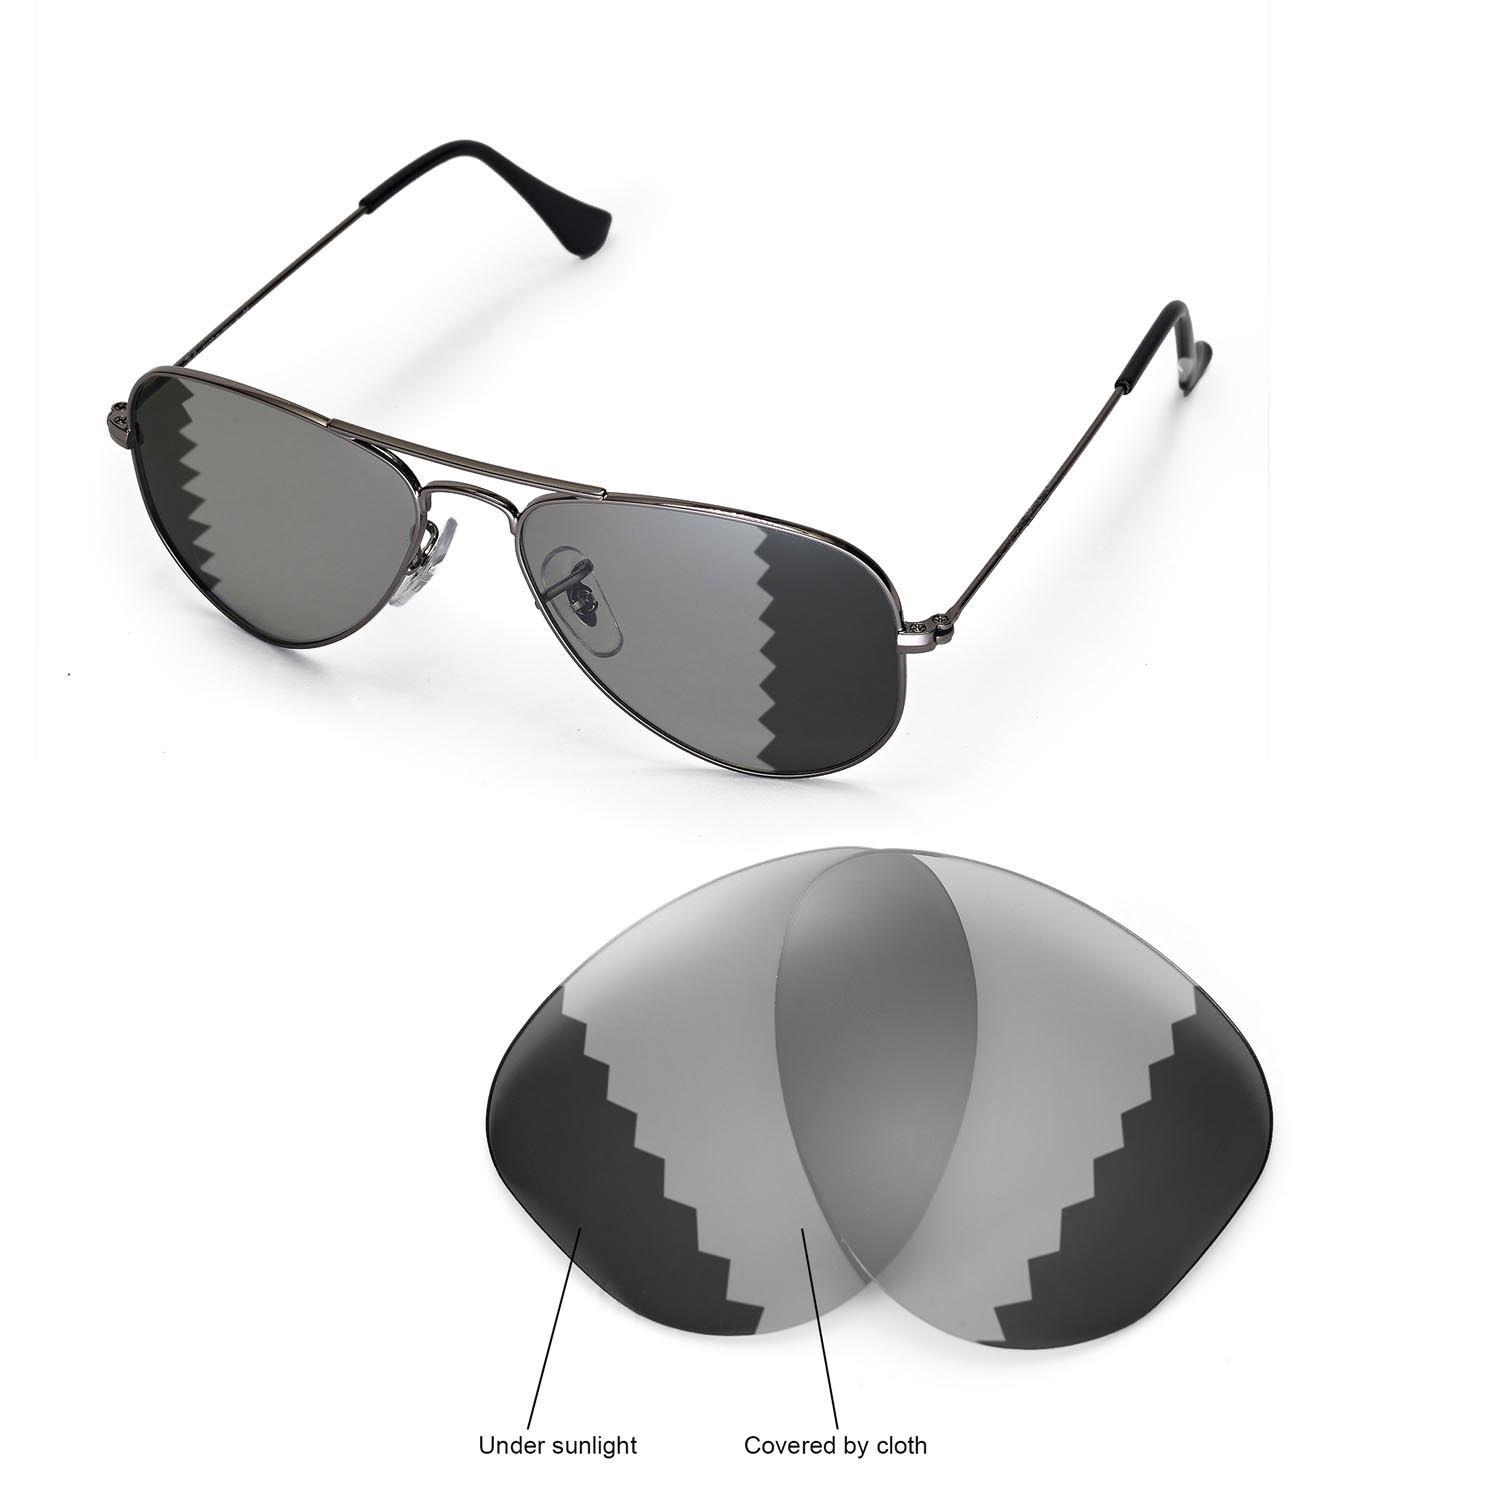 1025efb2b36 Details about New WL Polarized Transition Lenses For Ray-Ban Aviator RB3044  Small Metal 52mm